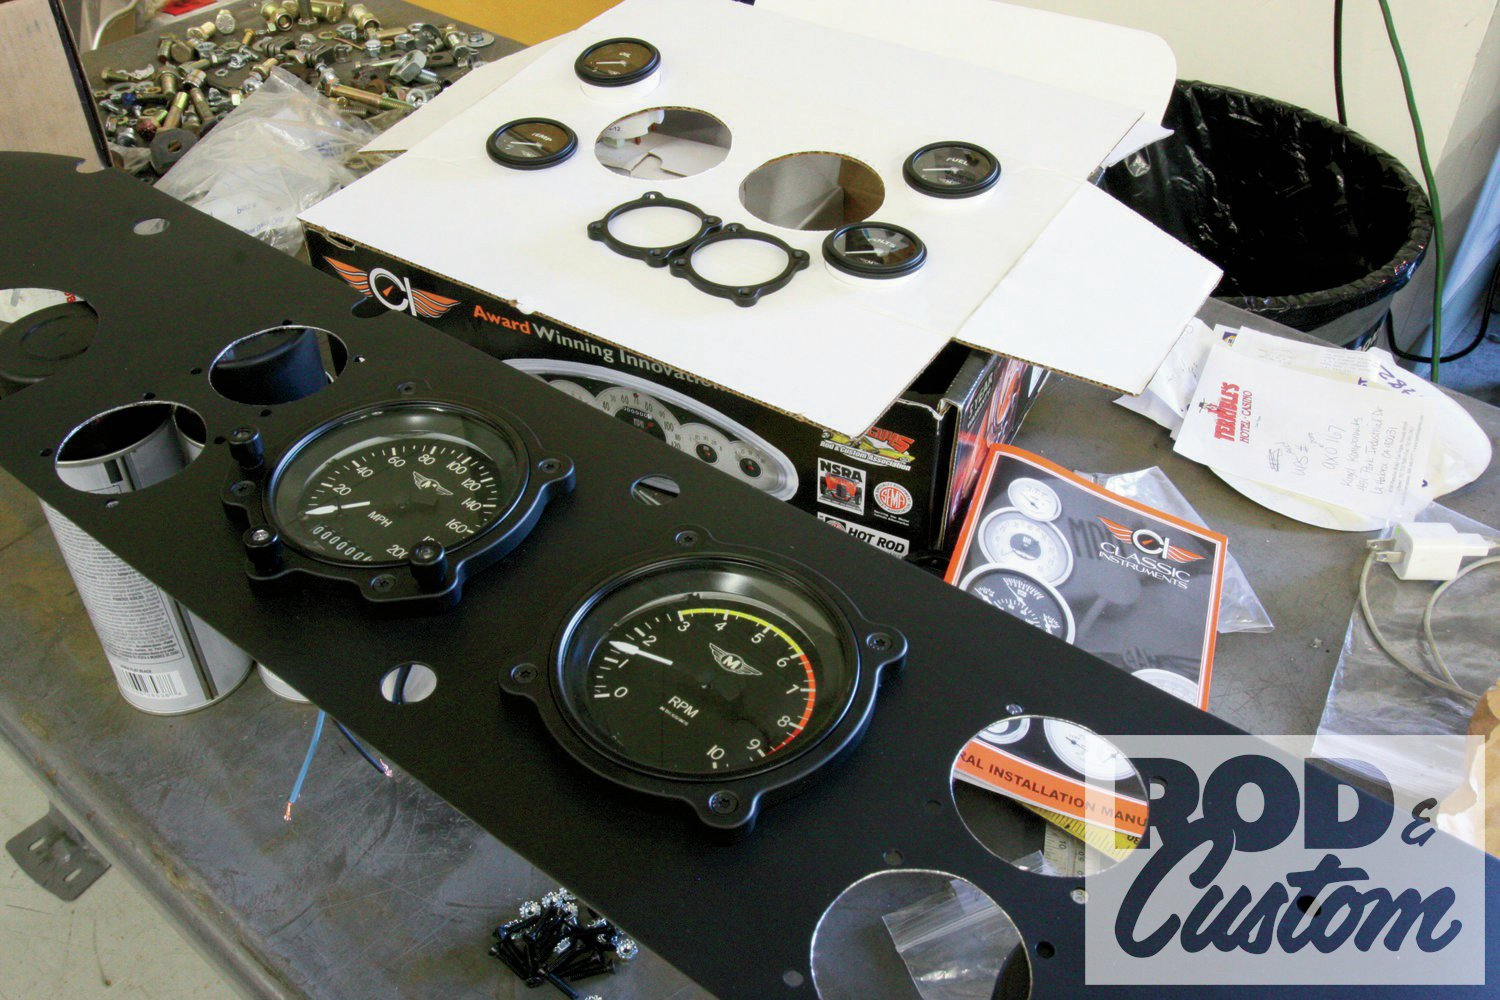 2. We showed you how to use a holesaw and drum sander to install gauges last month. As can be seen by the gauges in the background, the bezels for the Bomber Series gauges are separate, and require bolting through the dash, using the star bolts supplied. While the bezels will prevent the gauges from falling out, they won't stop them from turning, so the clamps on the rear are still required.